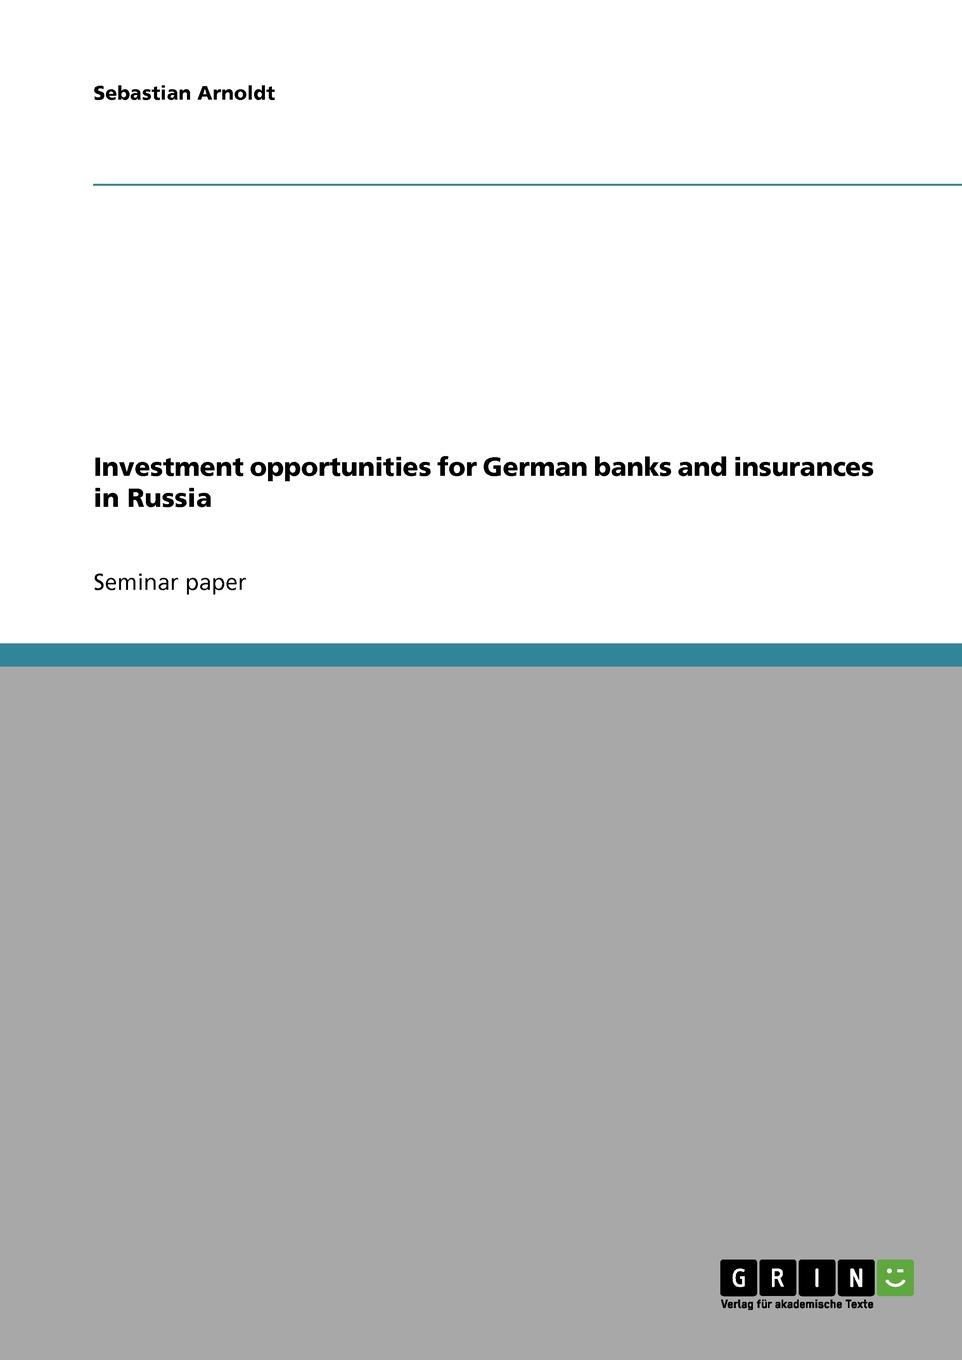 Sebastian Arnoldt Investment opportunities for German banks and insurances in Russia joshua rosenbaum investment banking workbook